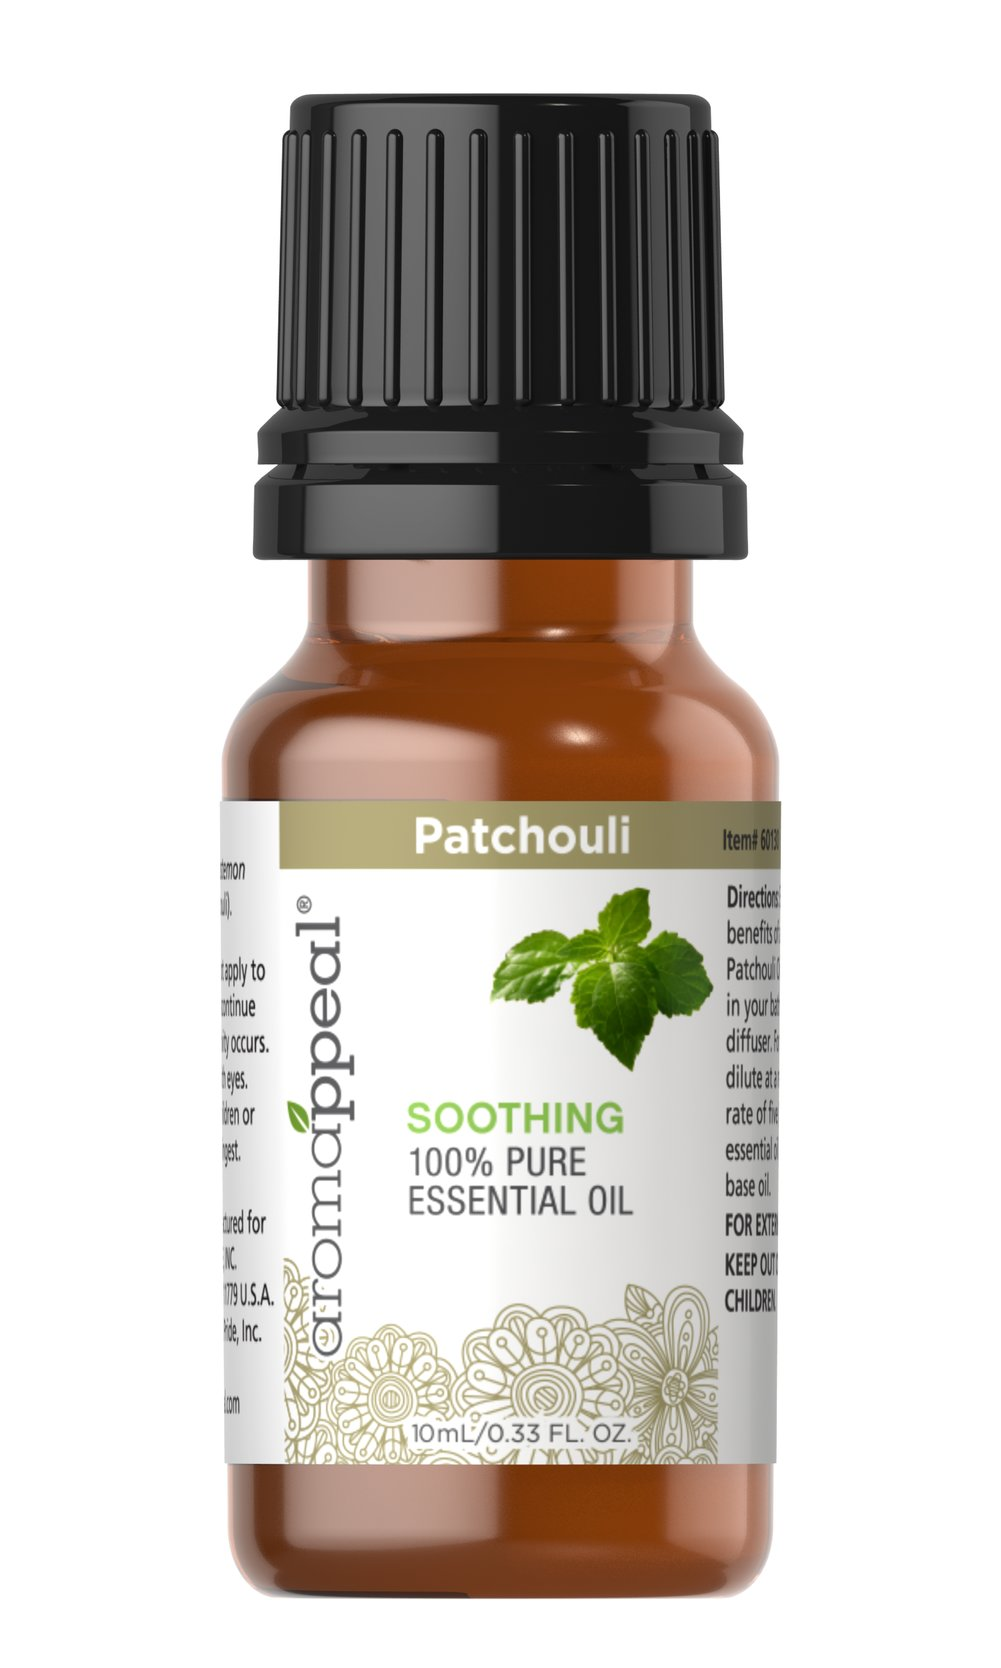 Patchouli 100% Pure Essential Oil  10 ml Oil  $14.44